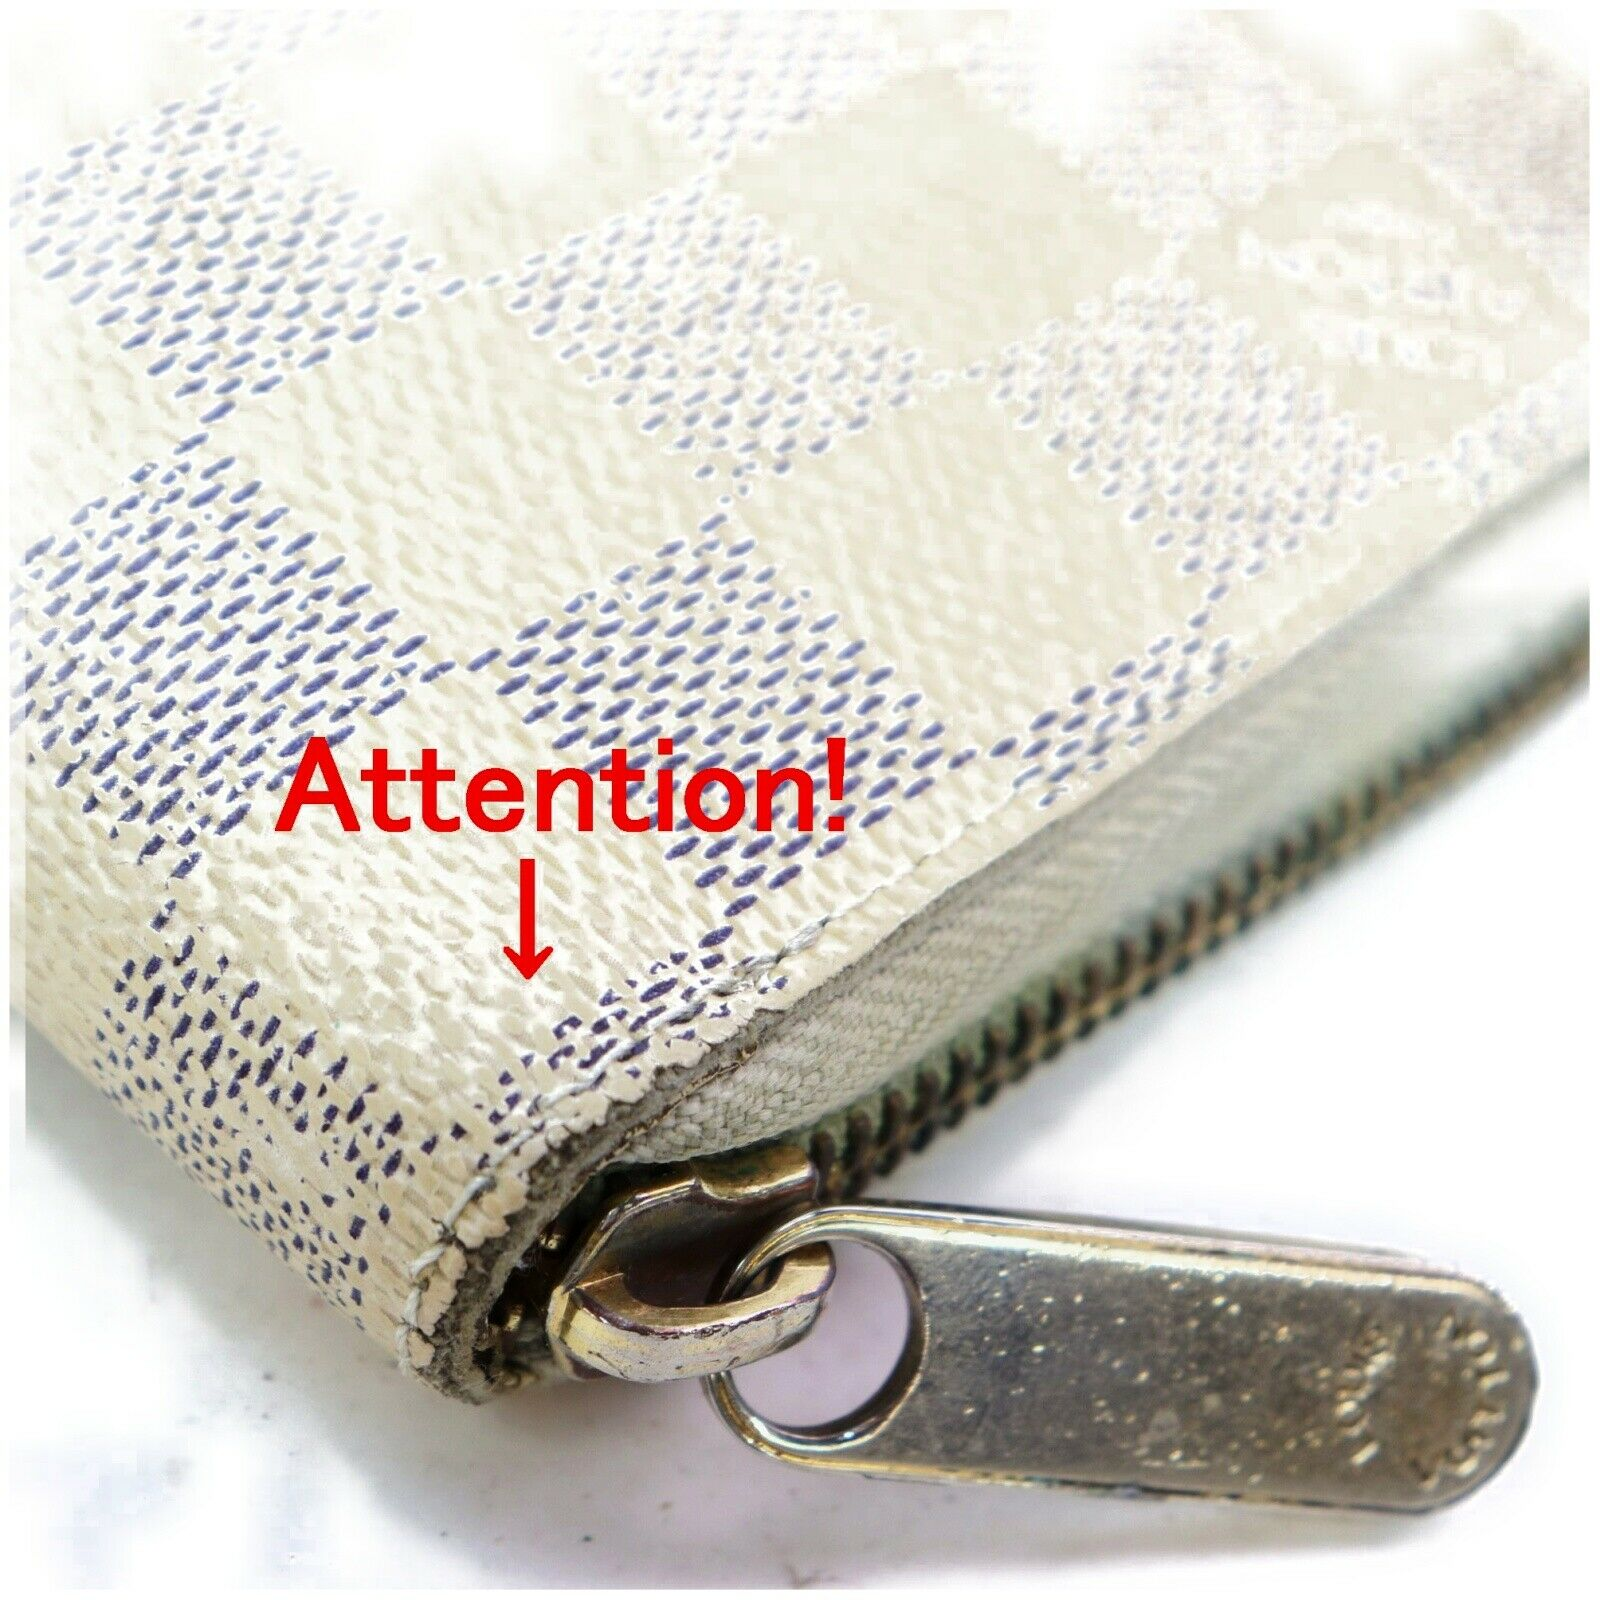 Louis Vuitton Zippy N60019 White Damier Azur Zippy Wallet 11425